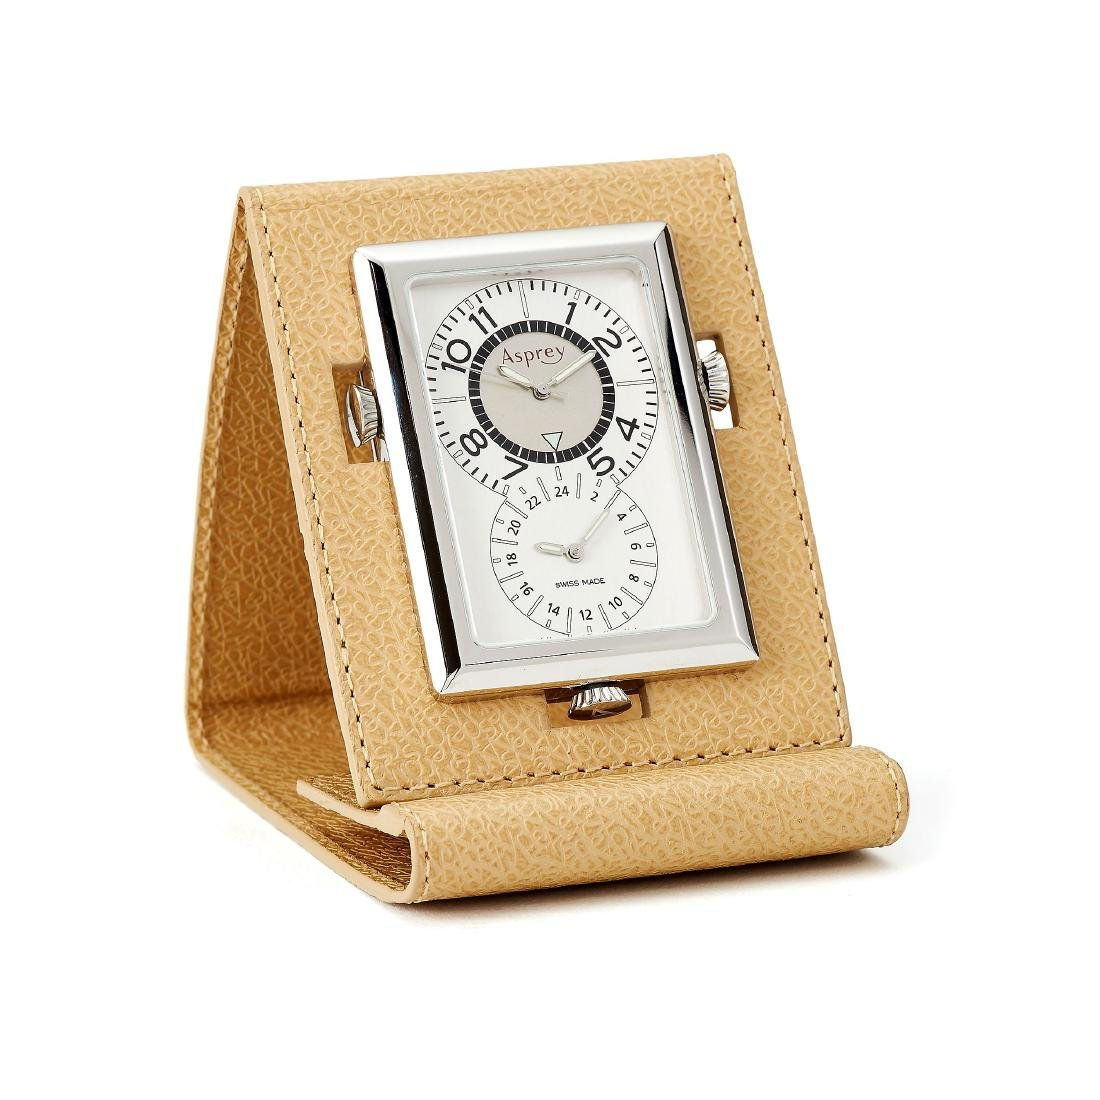 Asprey, a stainless steel and cream monogrammed leather